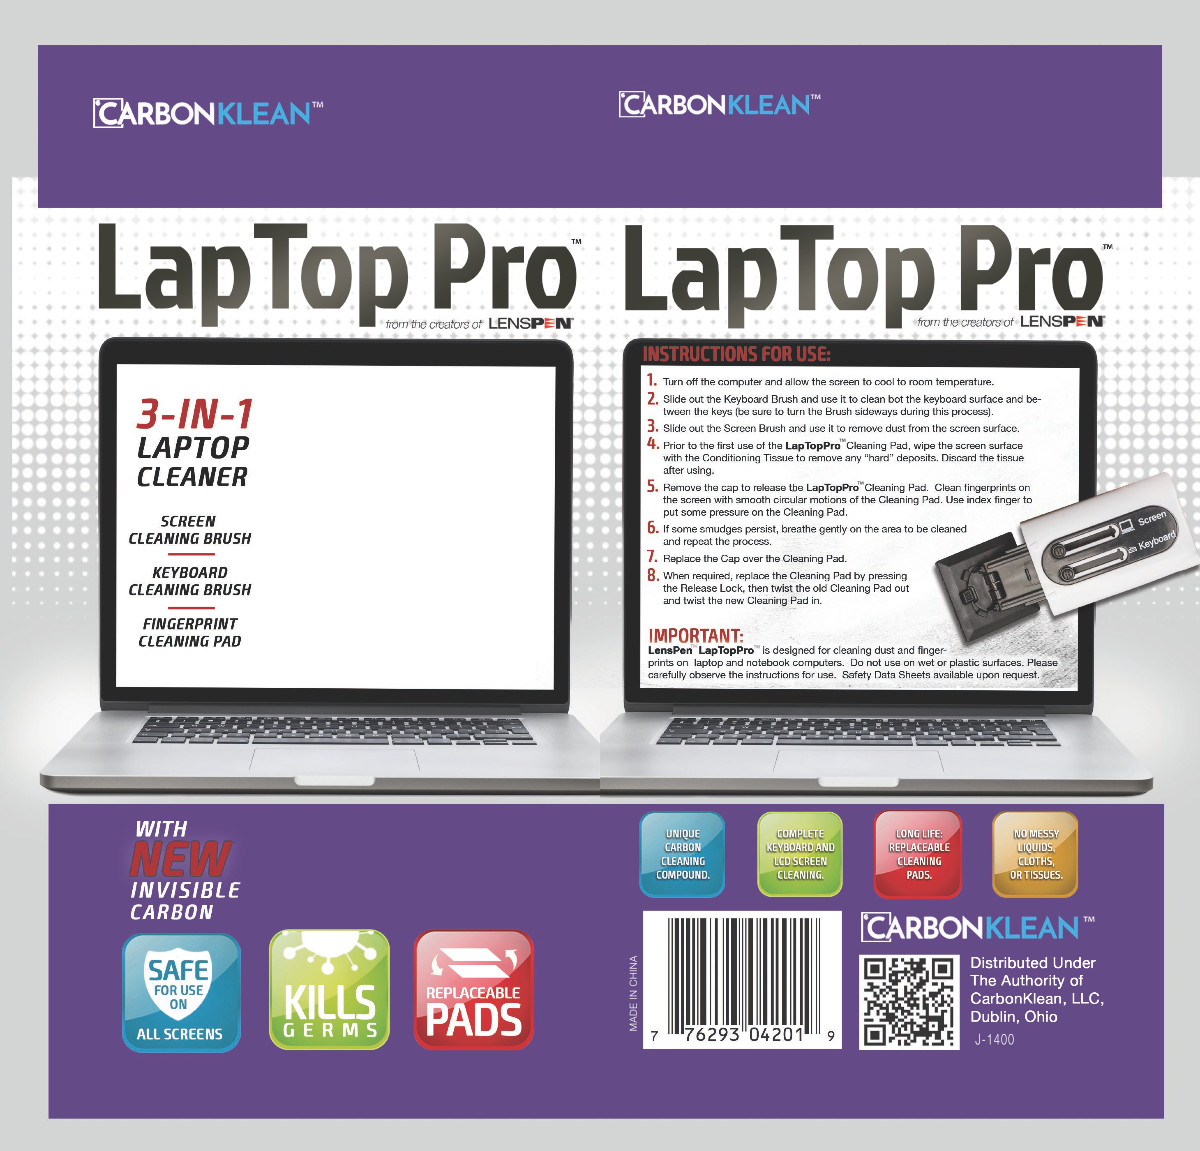 LapTop Pro Packaging Redesign